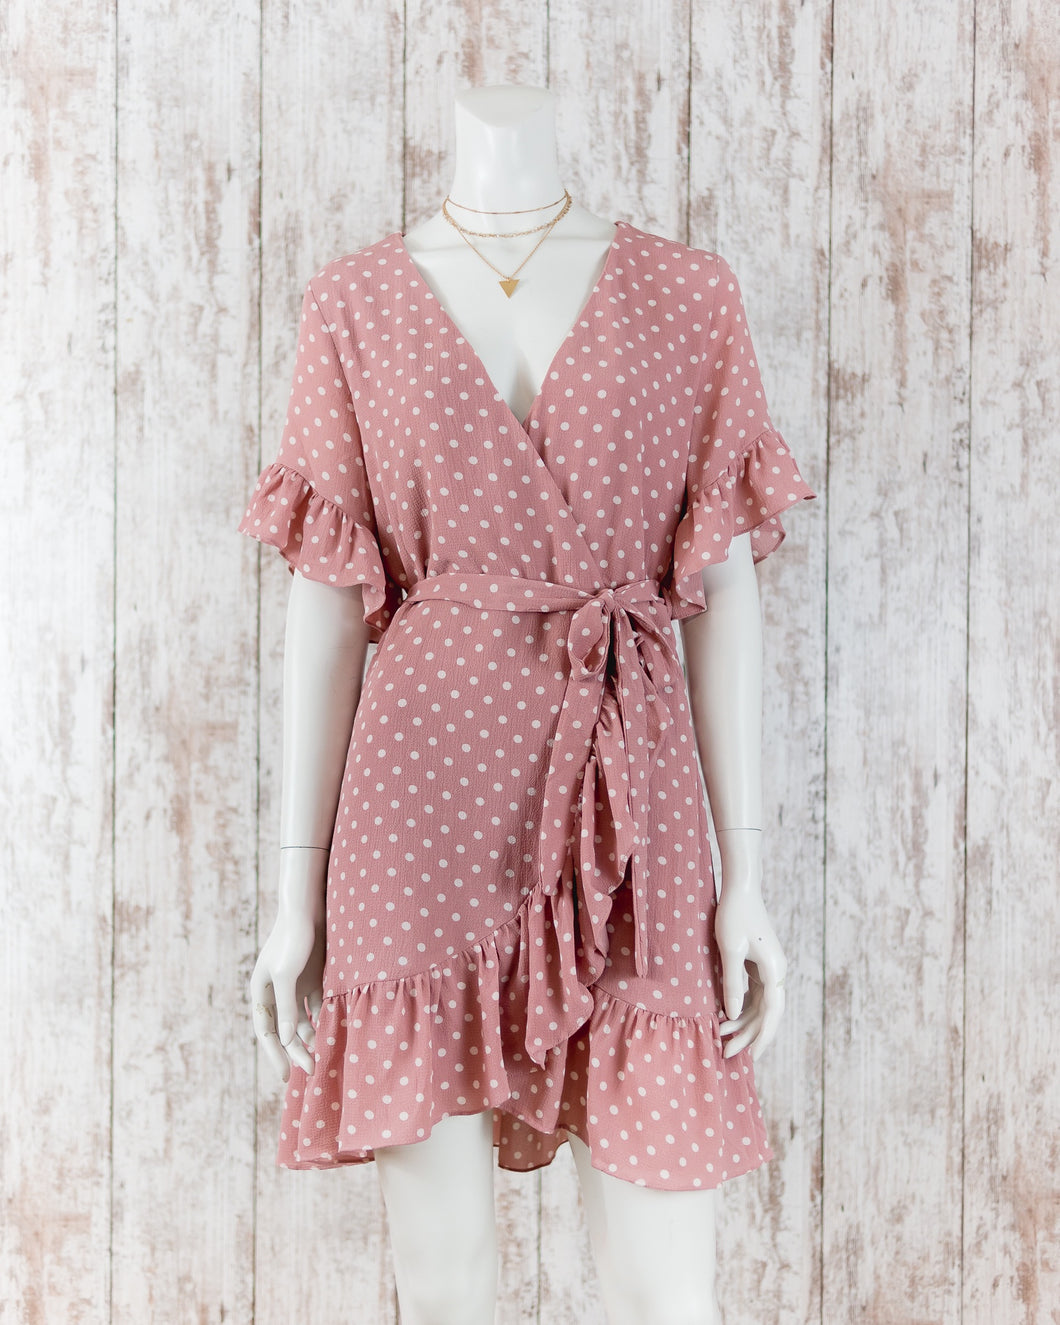 Ruffled Polka Dot Dress